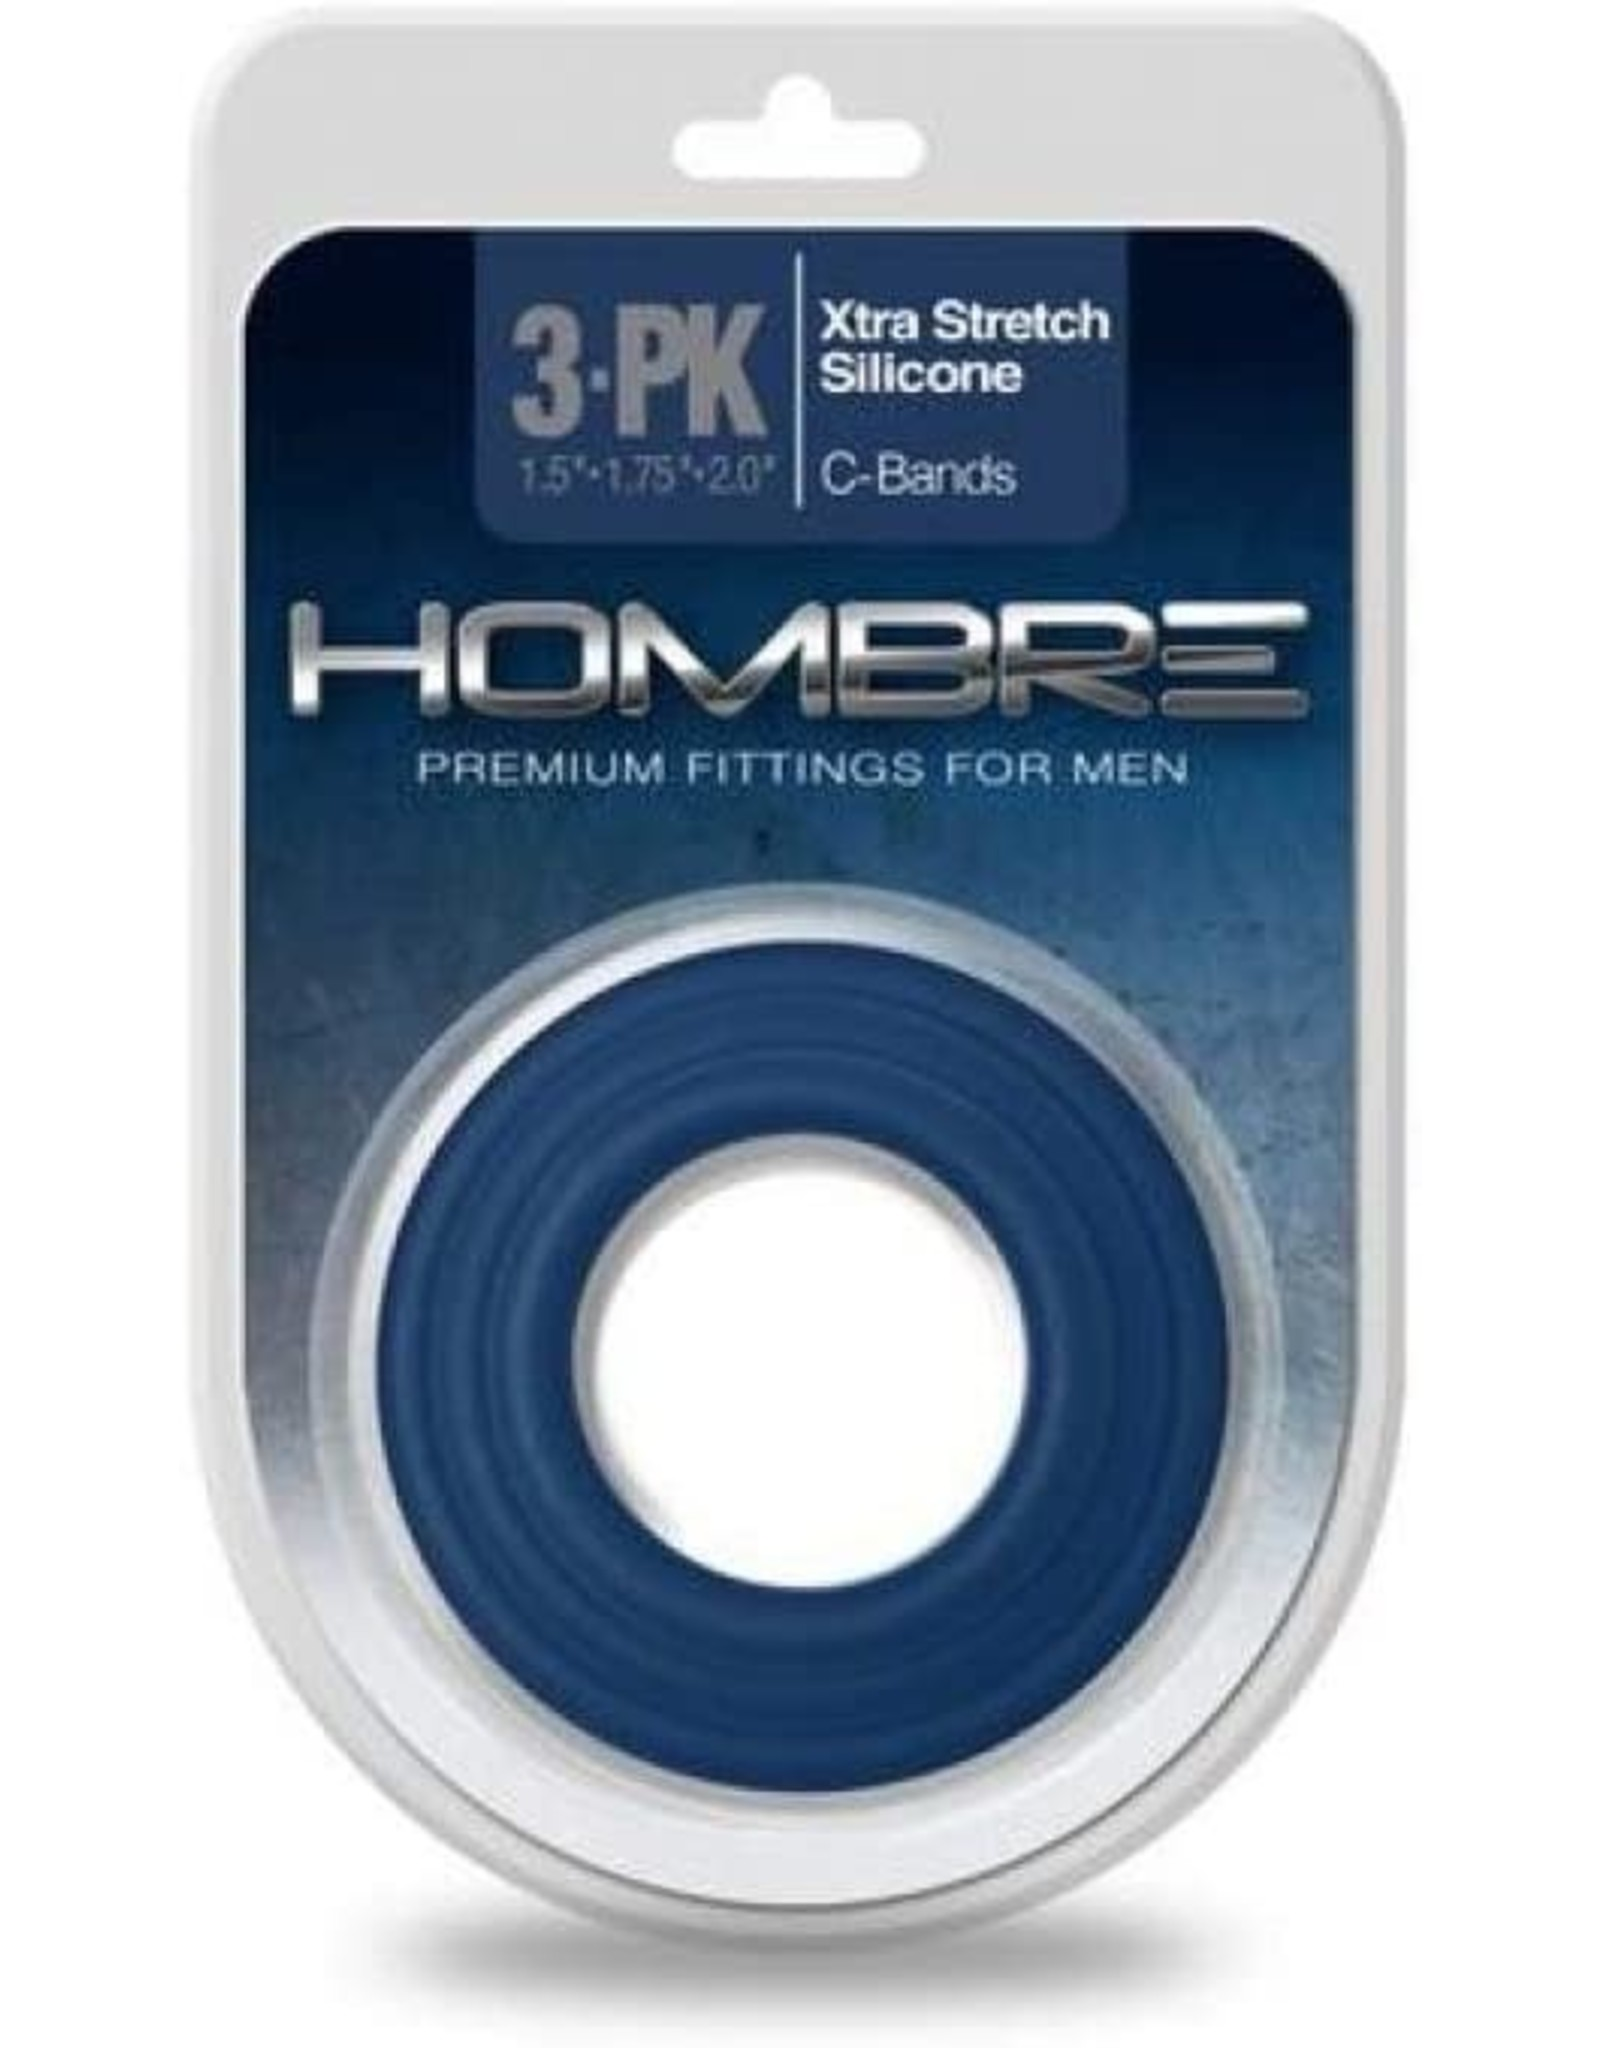 HOMBRE - XTRA STRETCH SILICONE C-BAND 3PK - NAVY BLUE